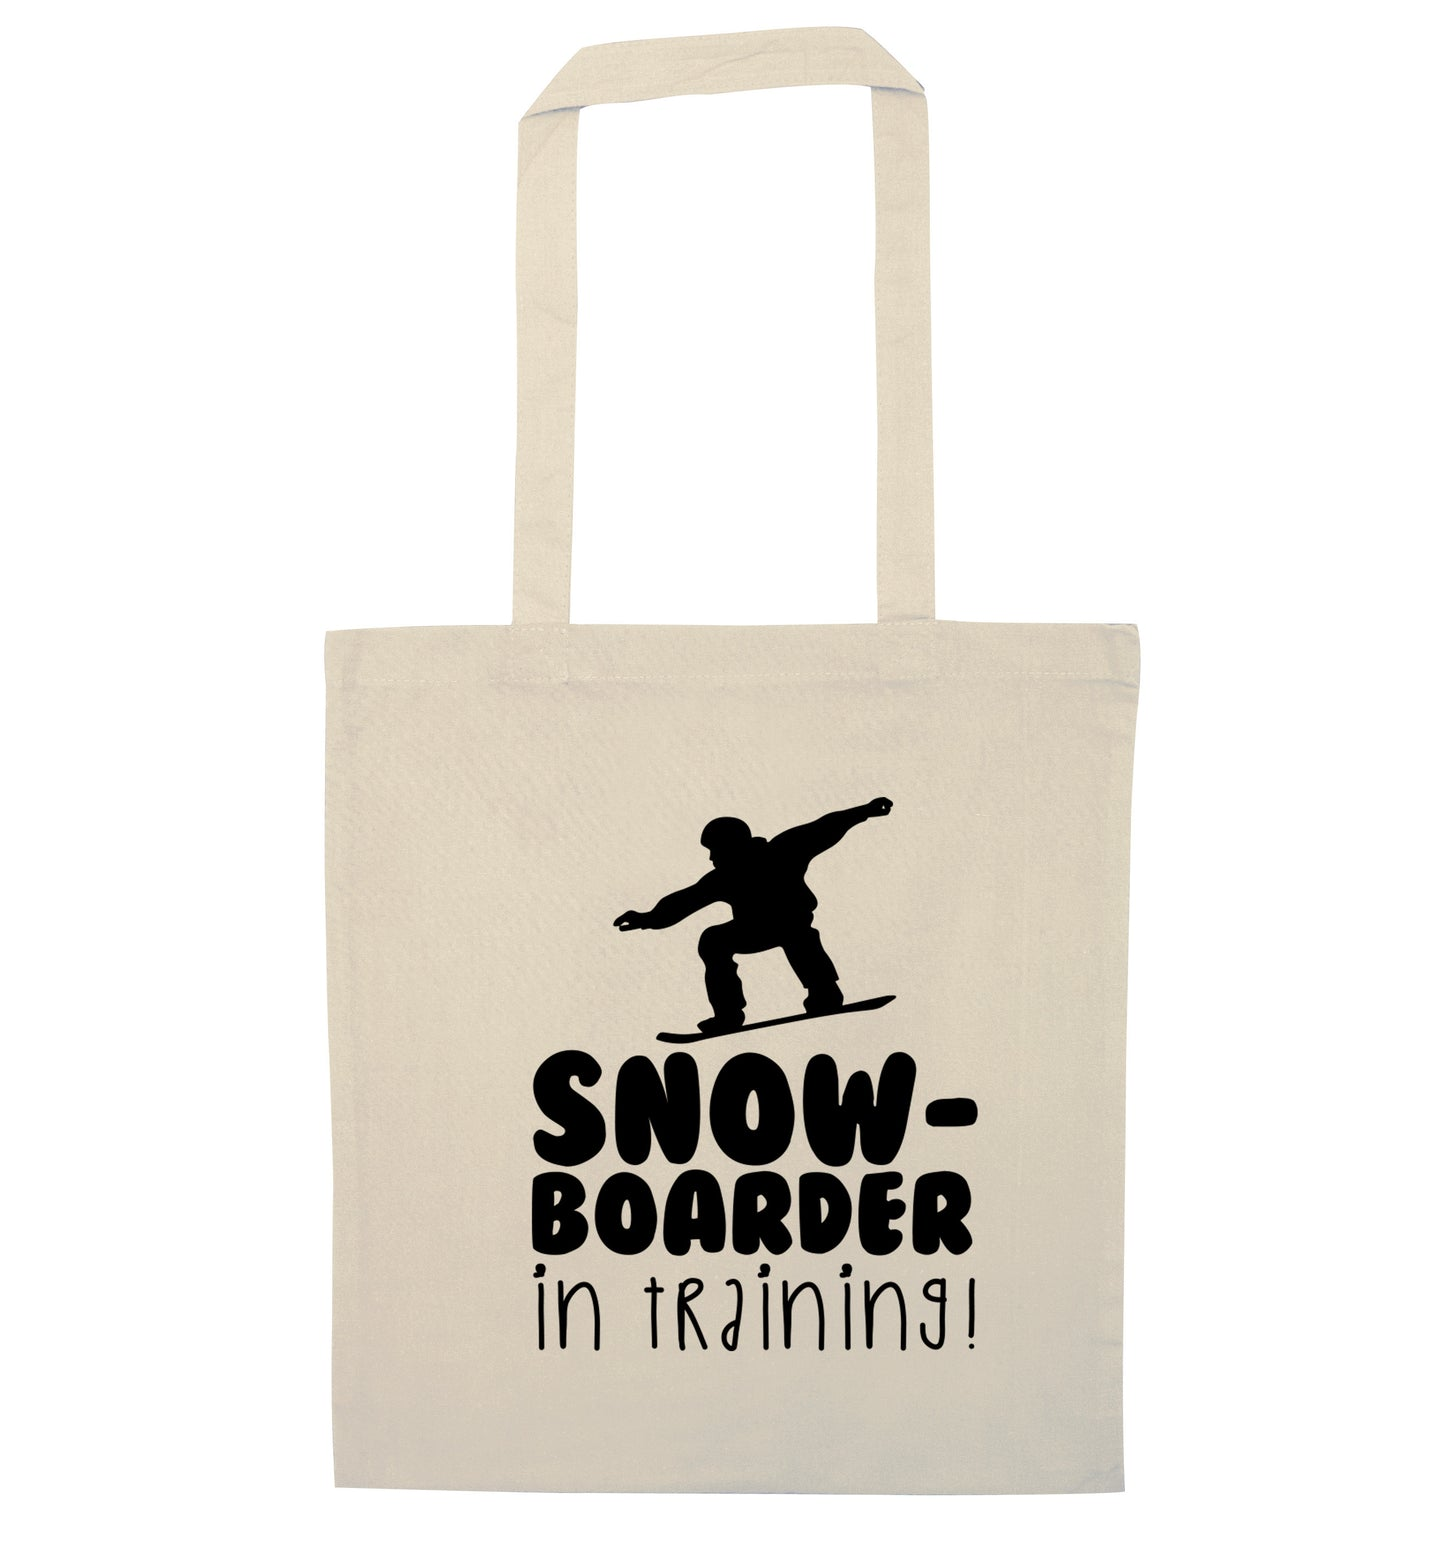 Snowboarder in training natural tote bag